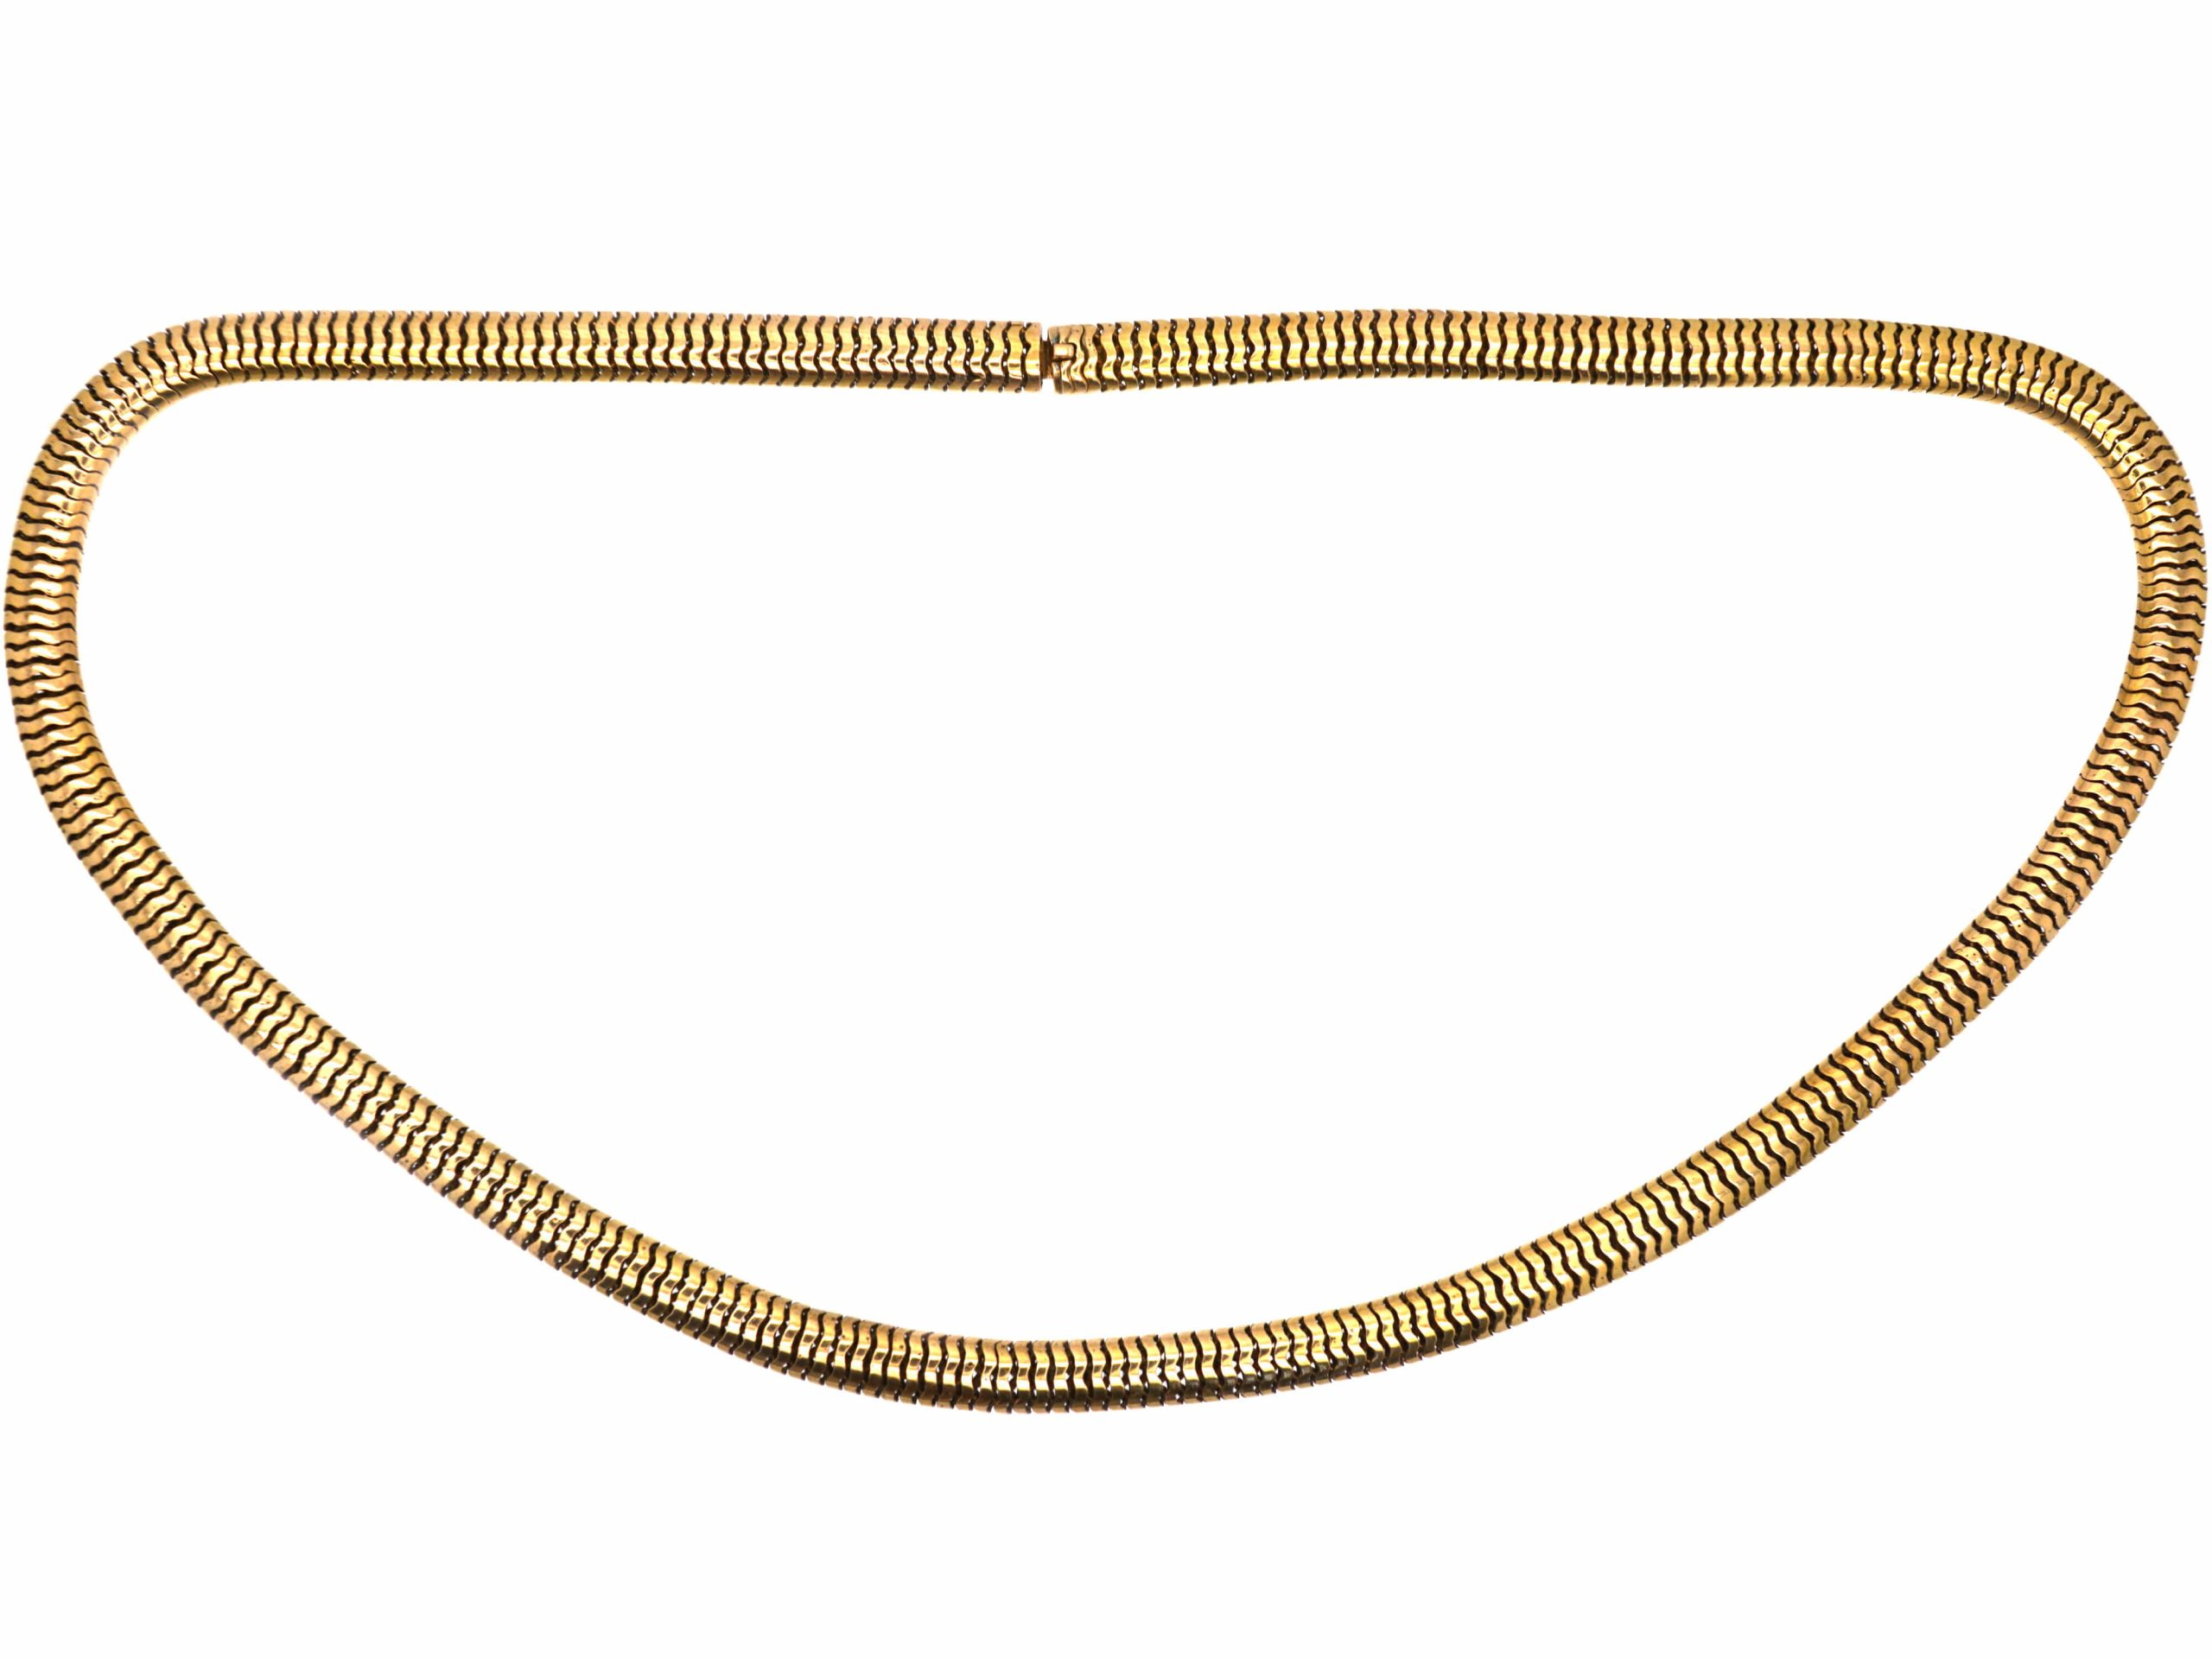 Victorian 15ct Gold Snake Chain